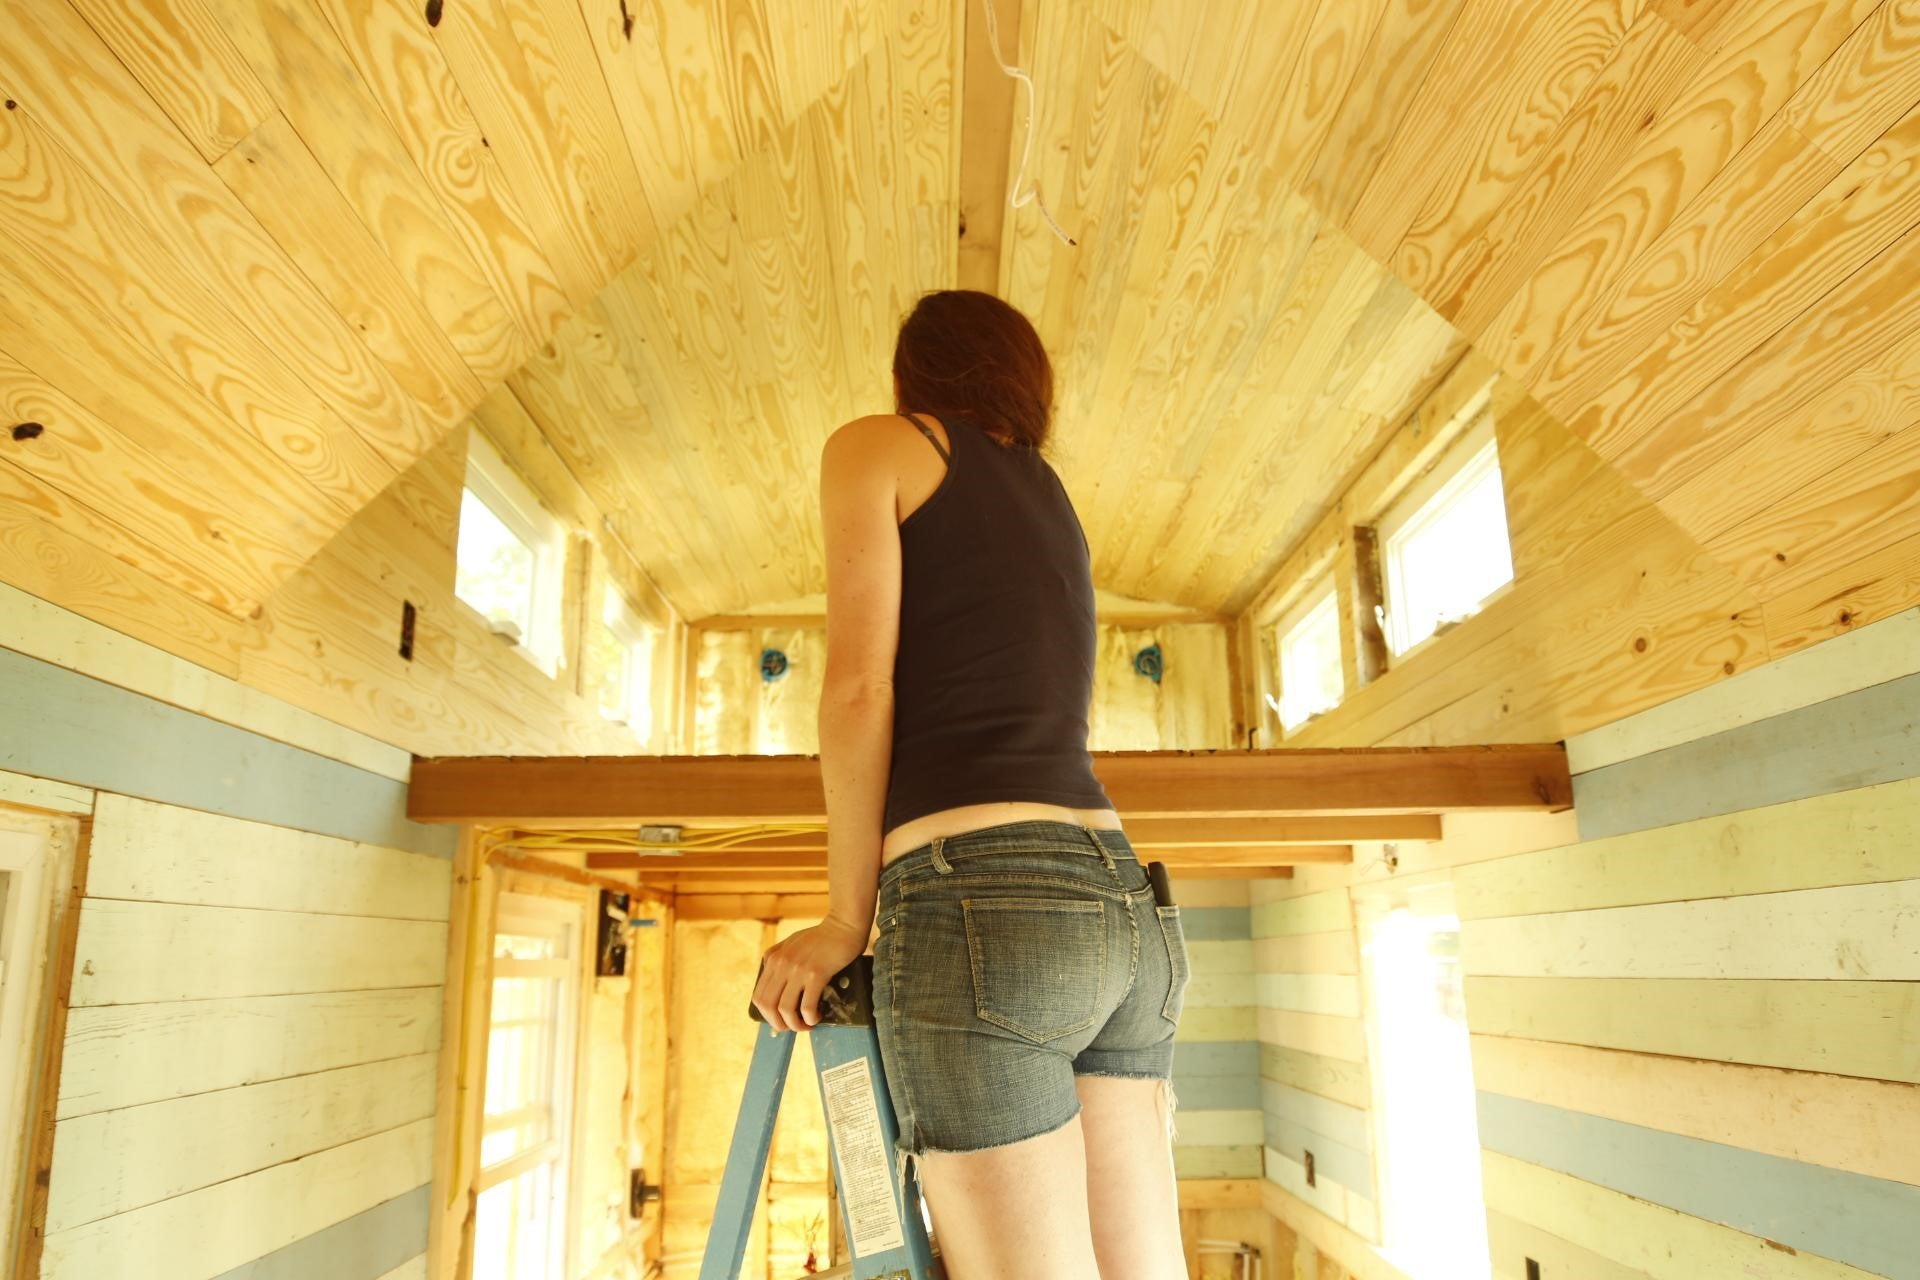 Tips on saving money during a DIY tiny house build? - #AskTheDreamTeam